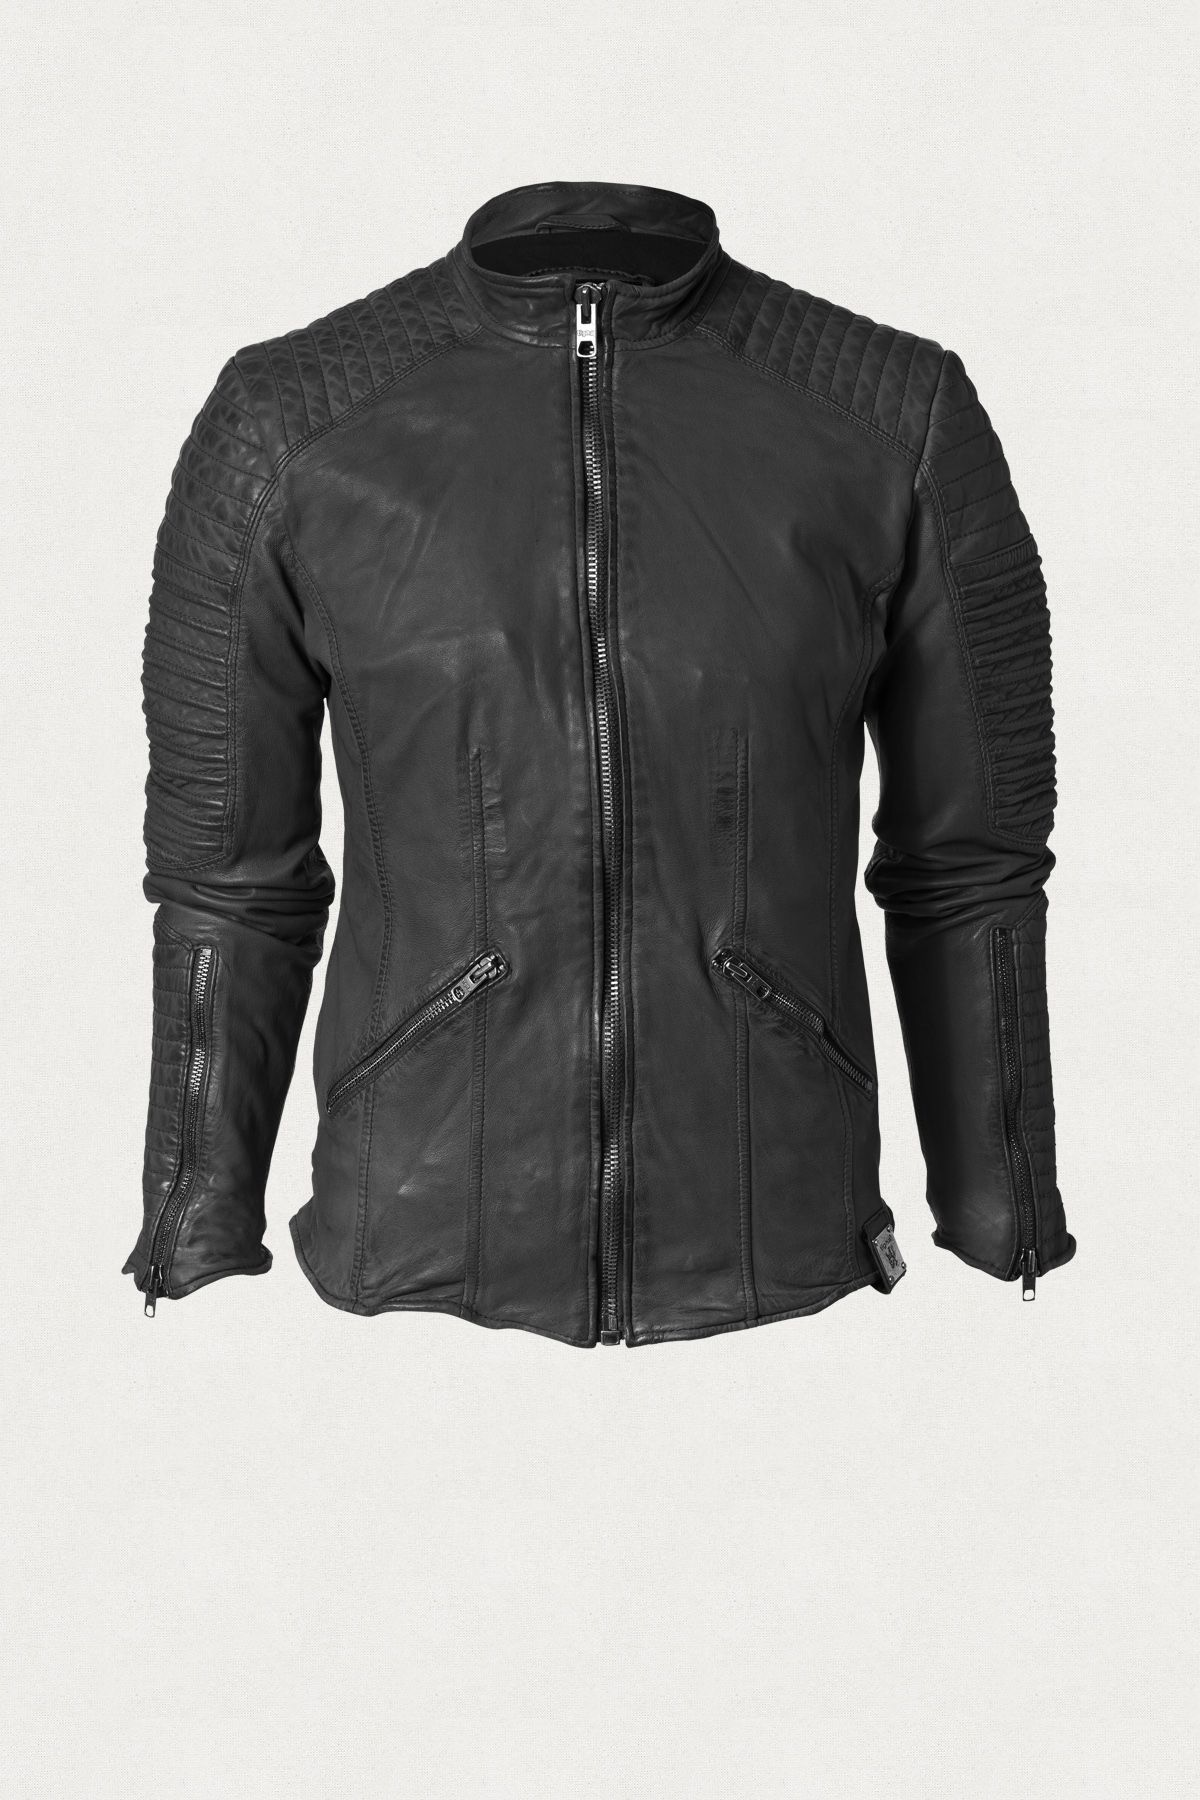 tigha Leatherjacket